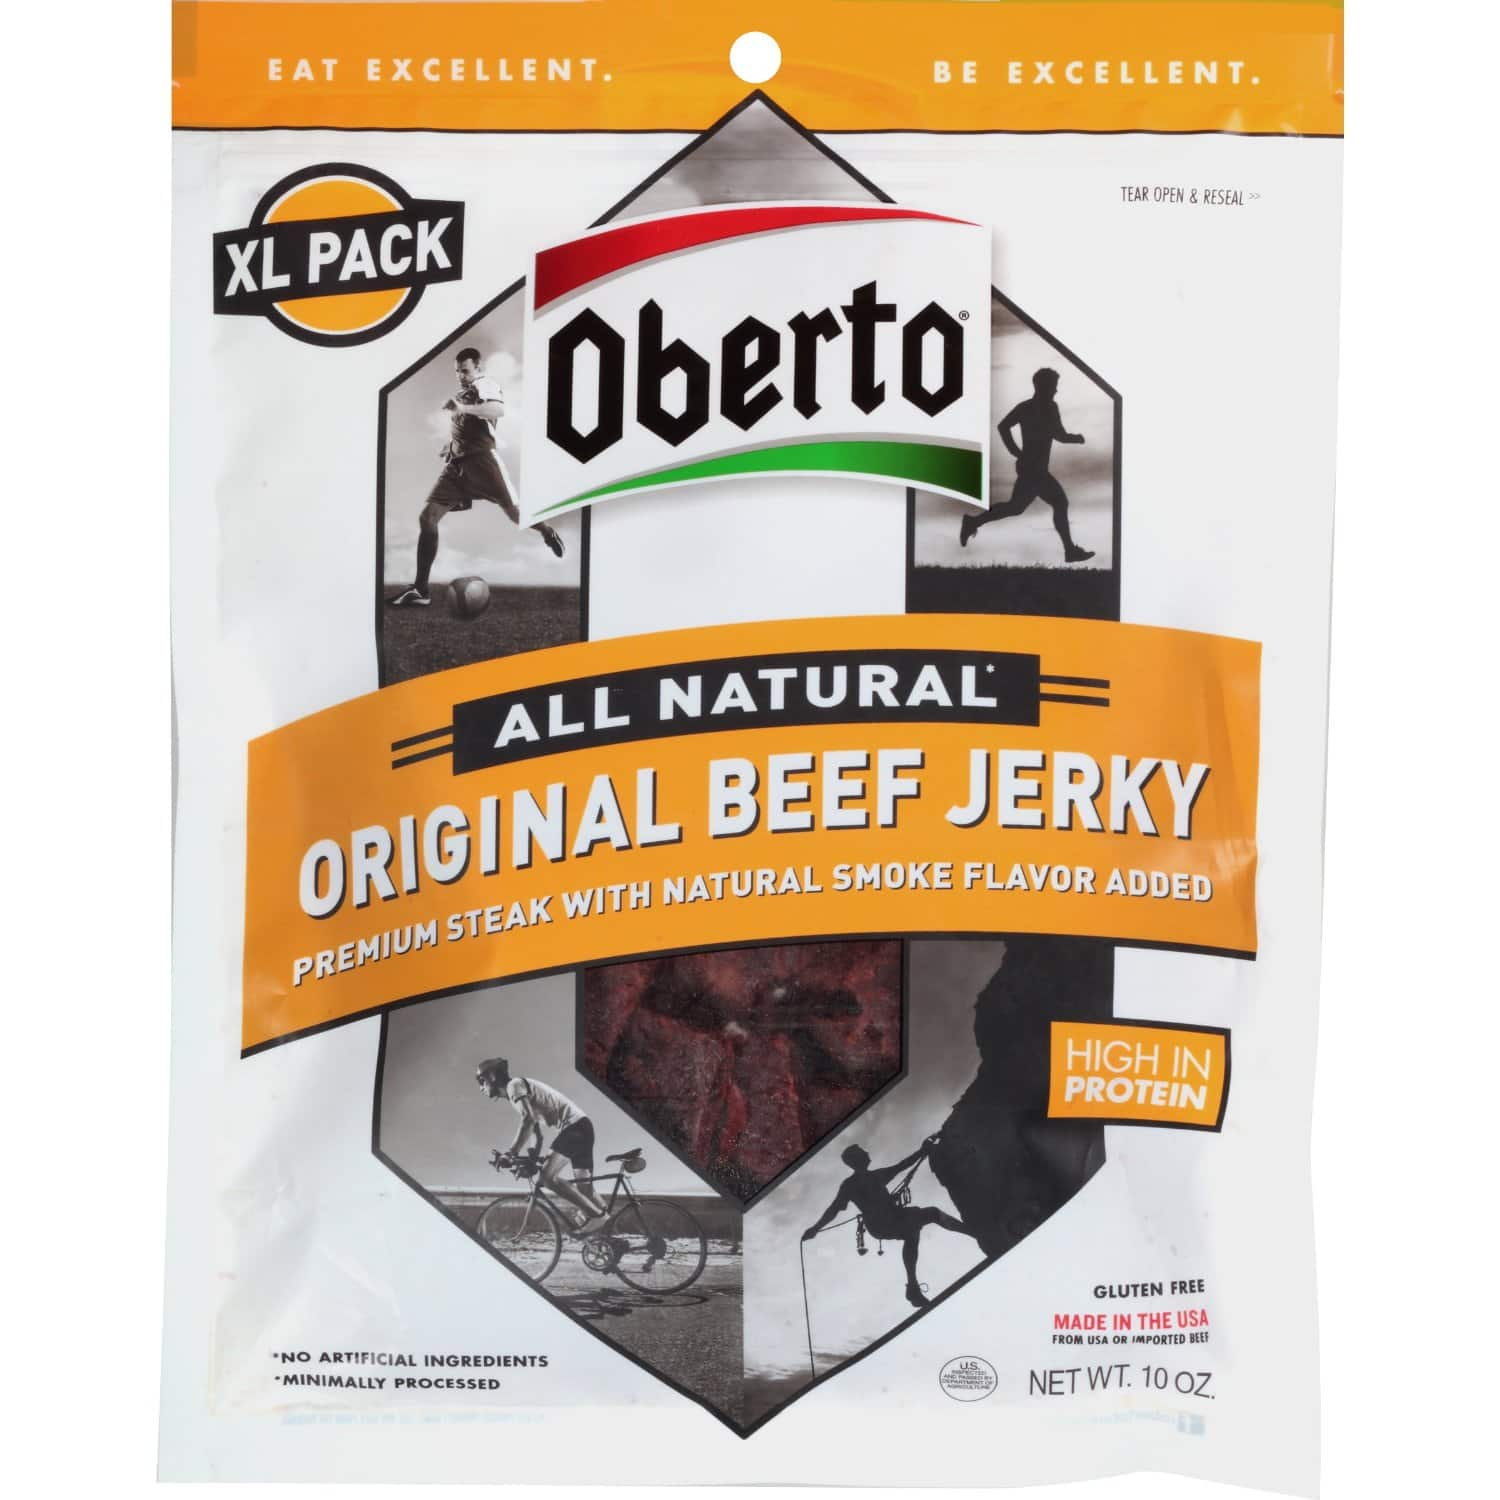 10oz Oberto All Natural Original Beef Jerky $8.75 + Free Shipping with Subscribe and Save